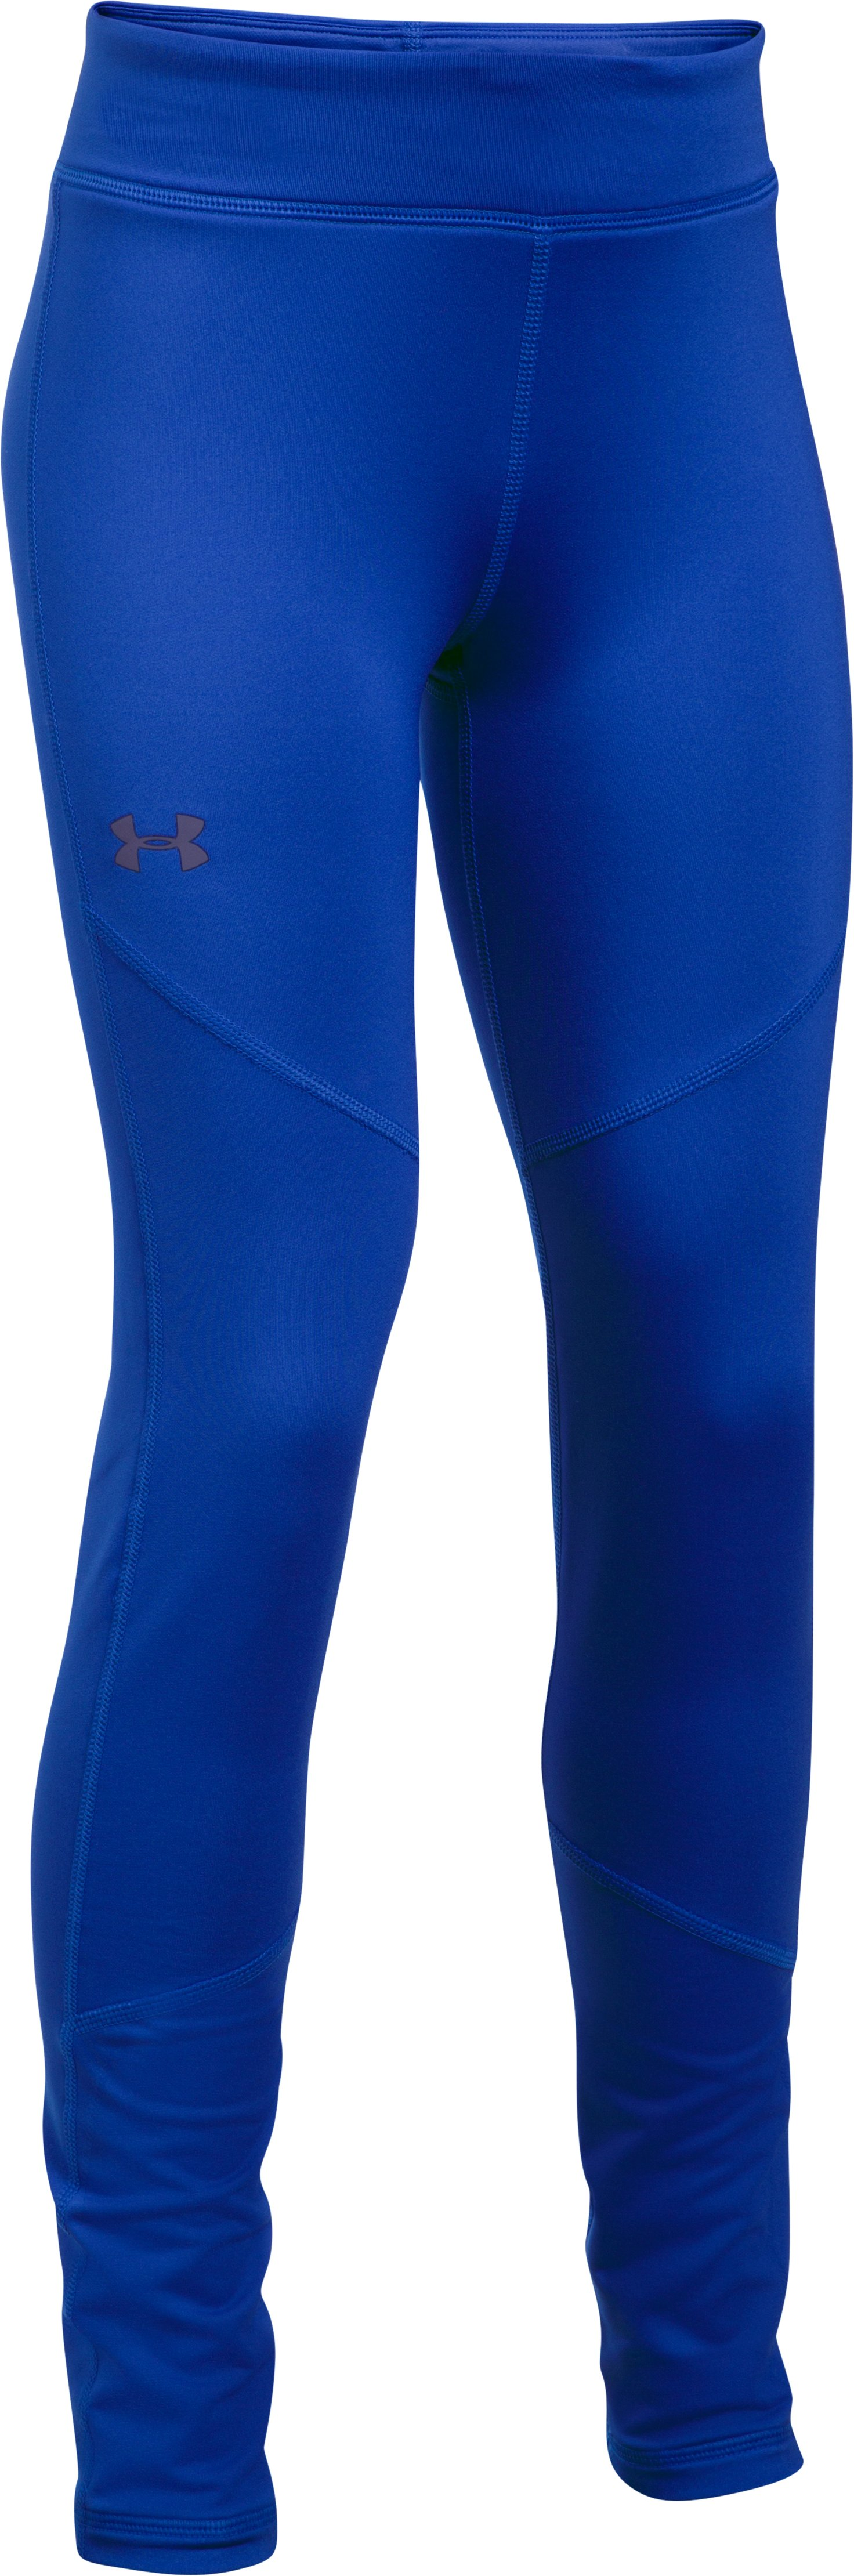 Girls' ColdGear® Leggings, LAPIS BLUE